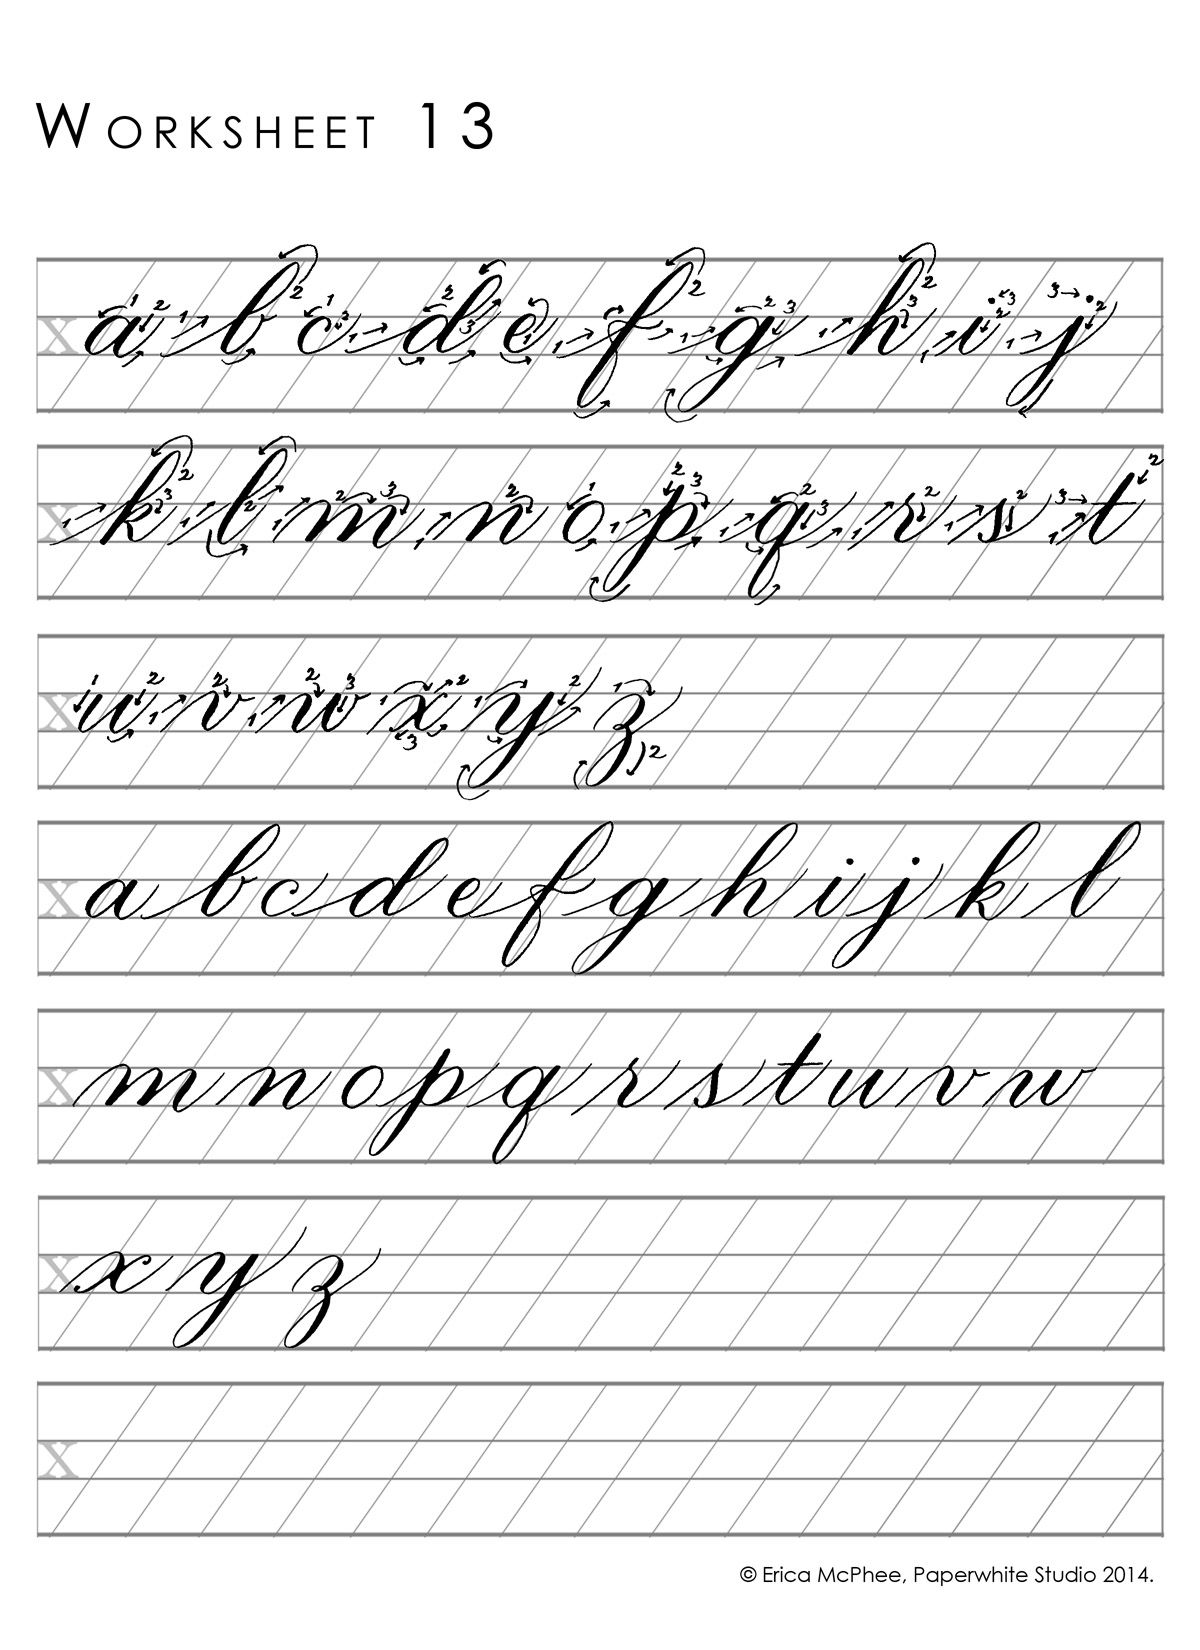 Great Worksheets For Copperplate